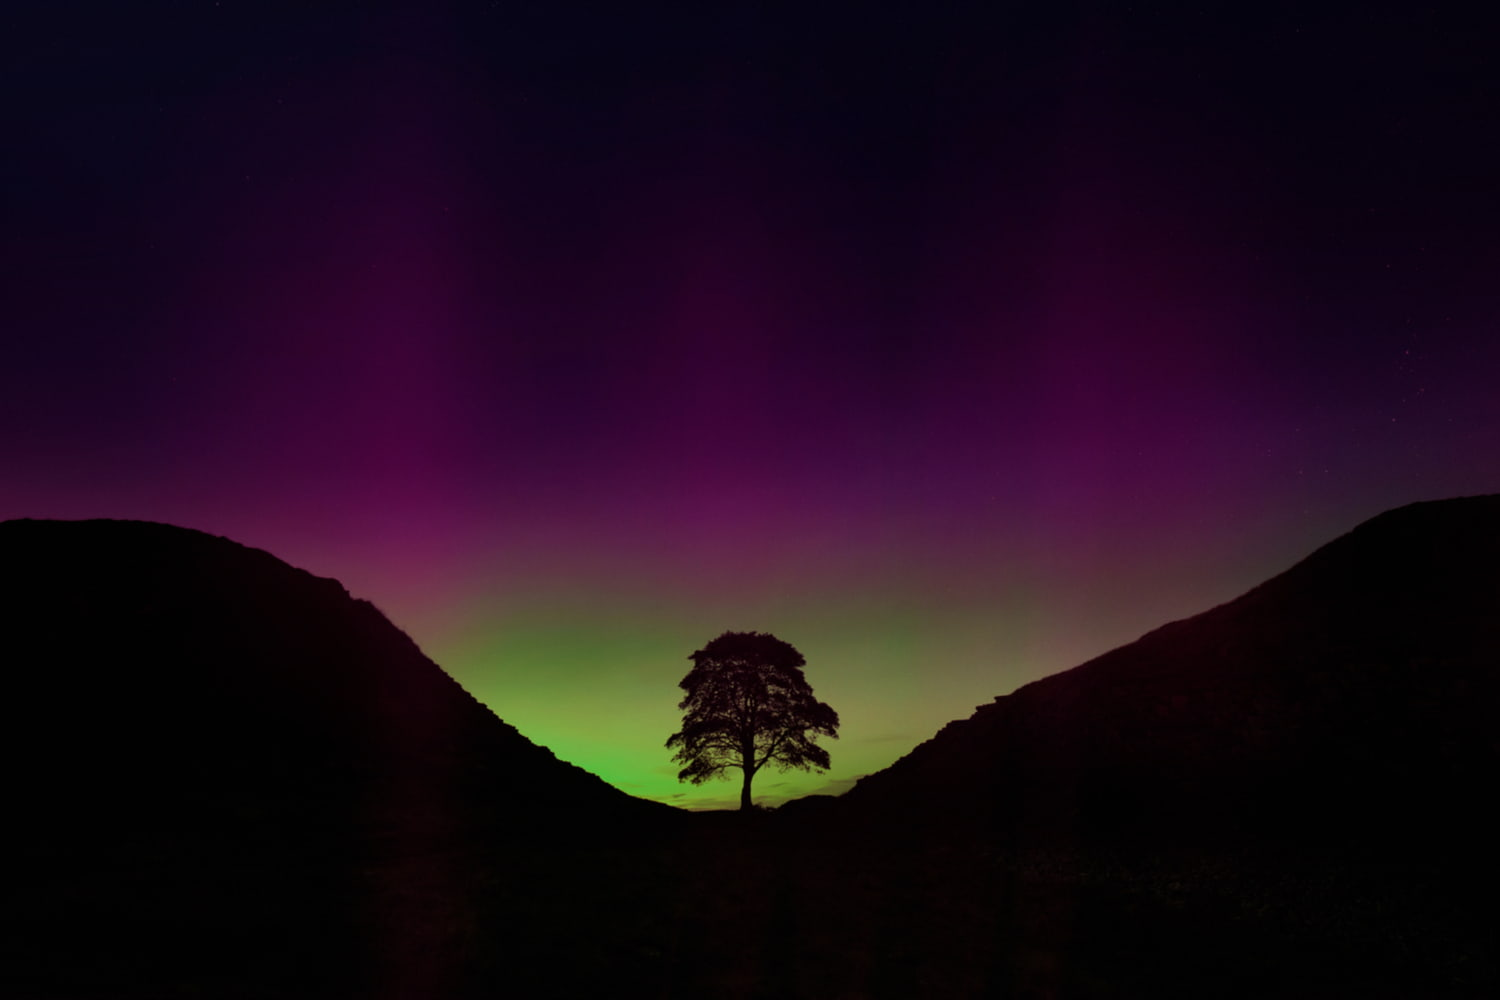 Northern lights over lone tree at sycamore gap